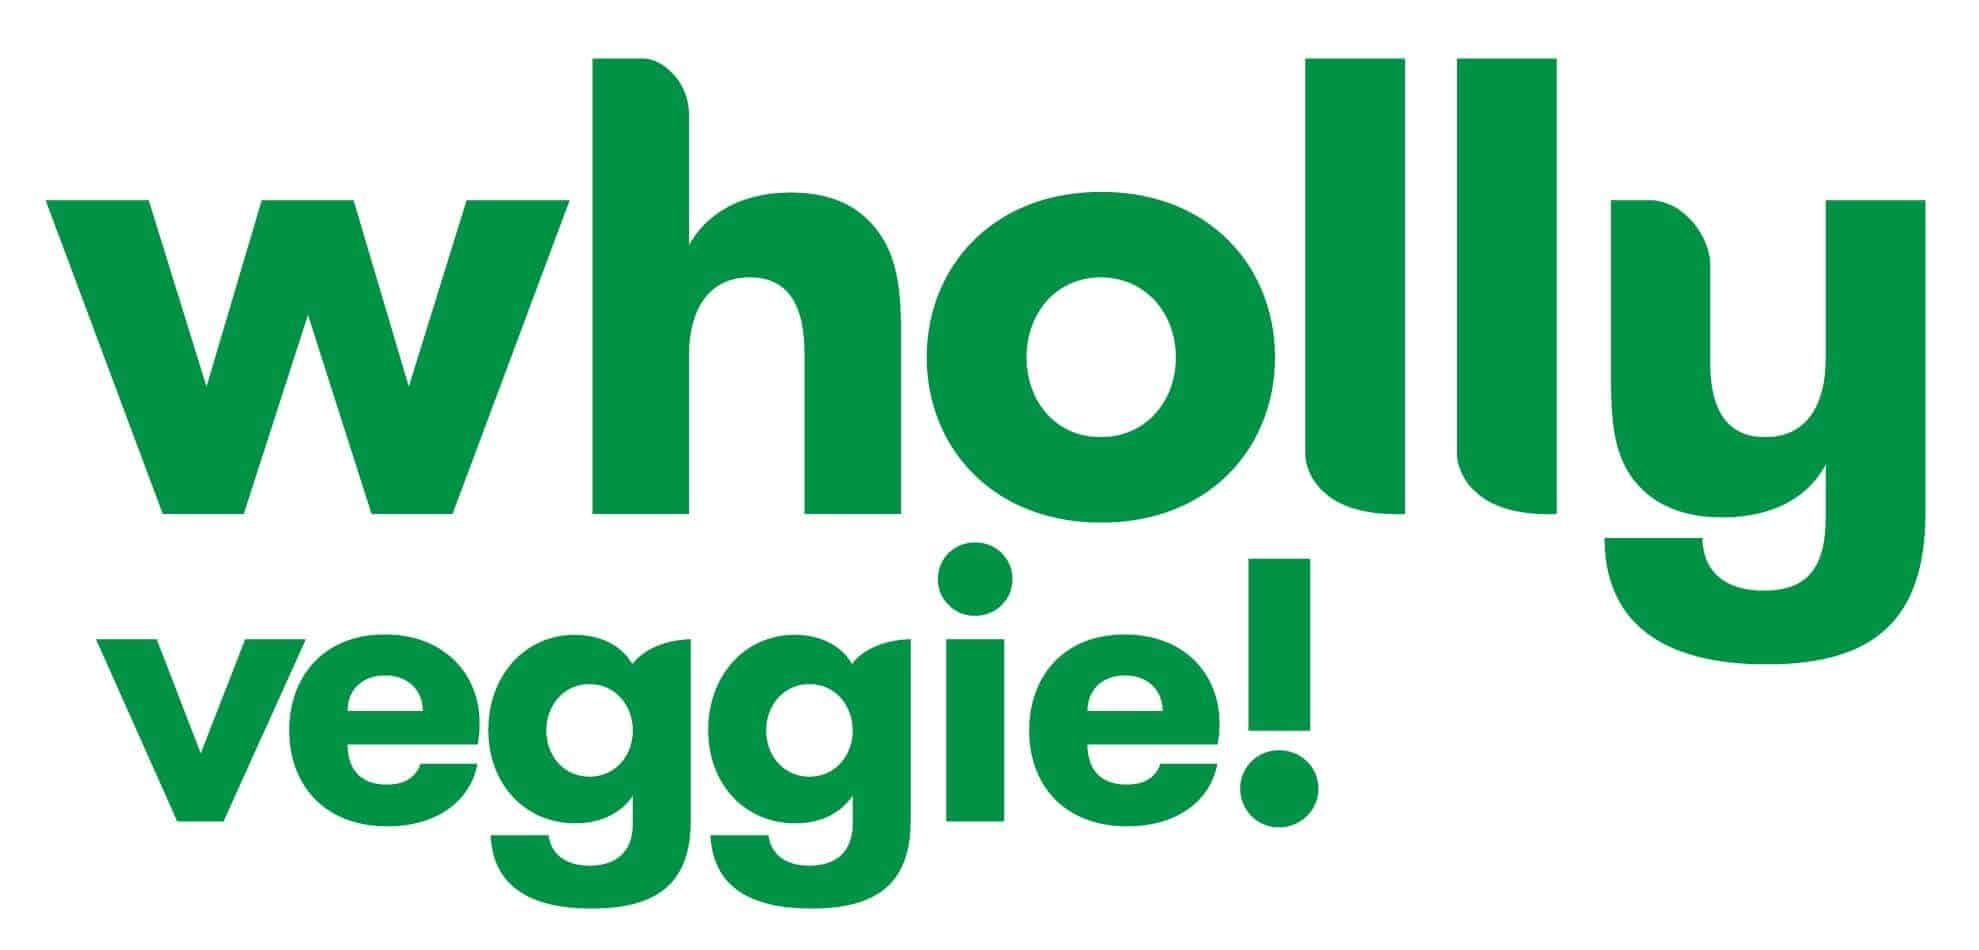 Wholly Veggie! logo